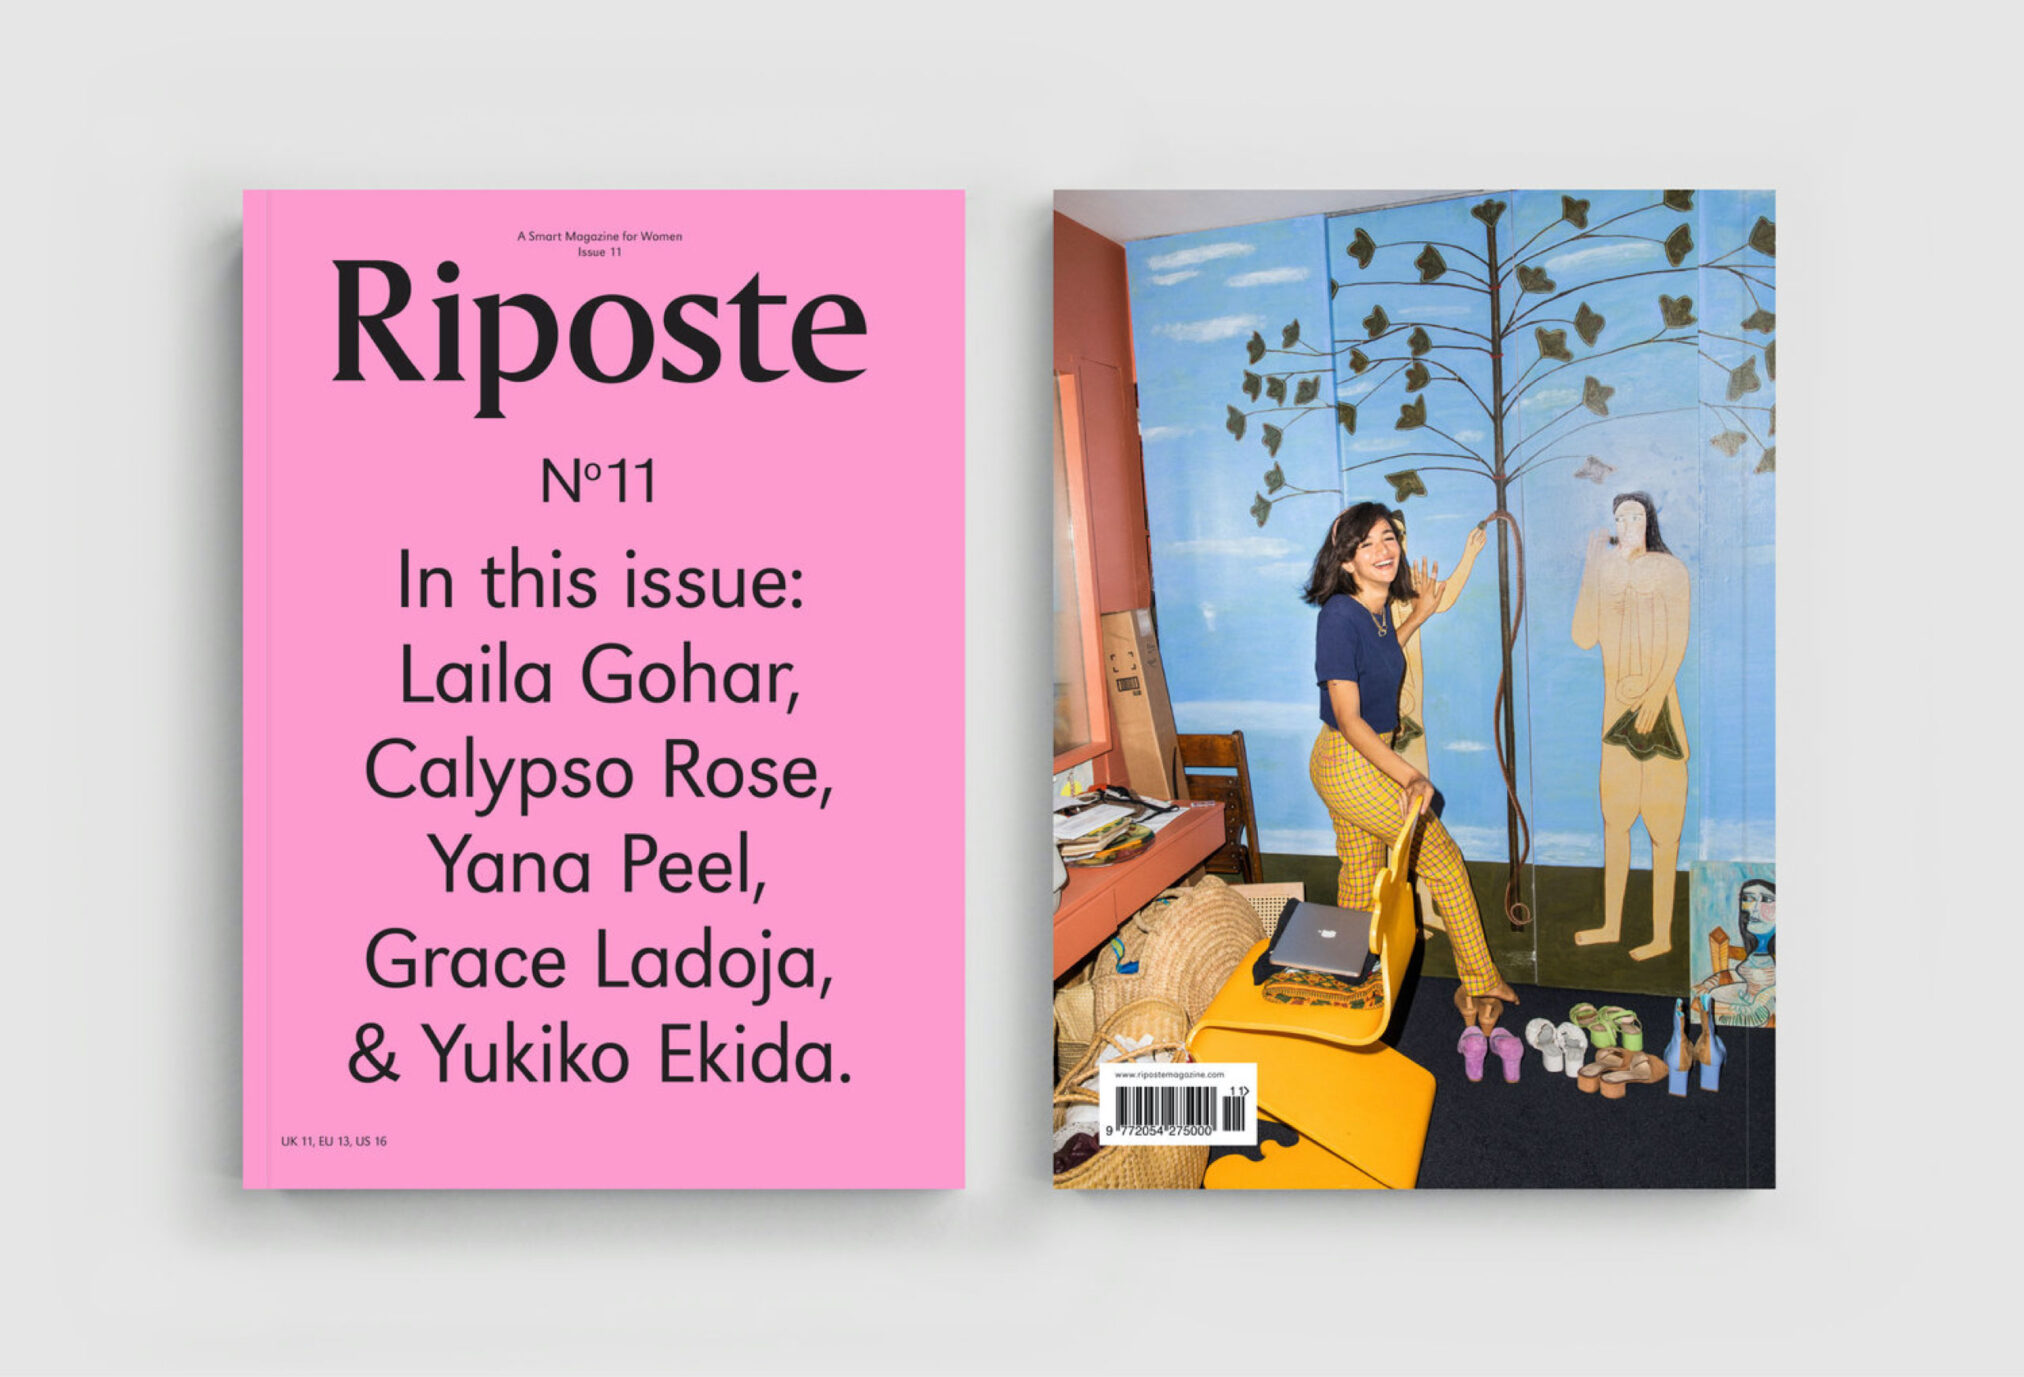 Useful tips for reducing plastic in our lives for Riposte Magazine 11